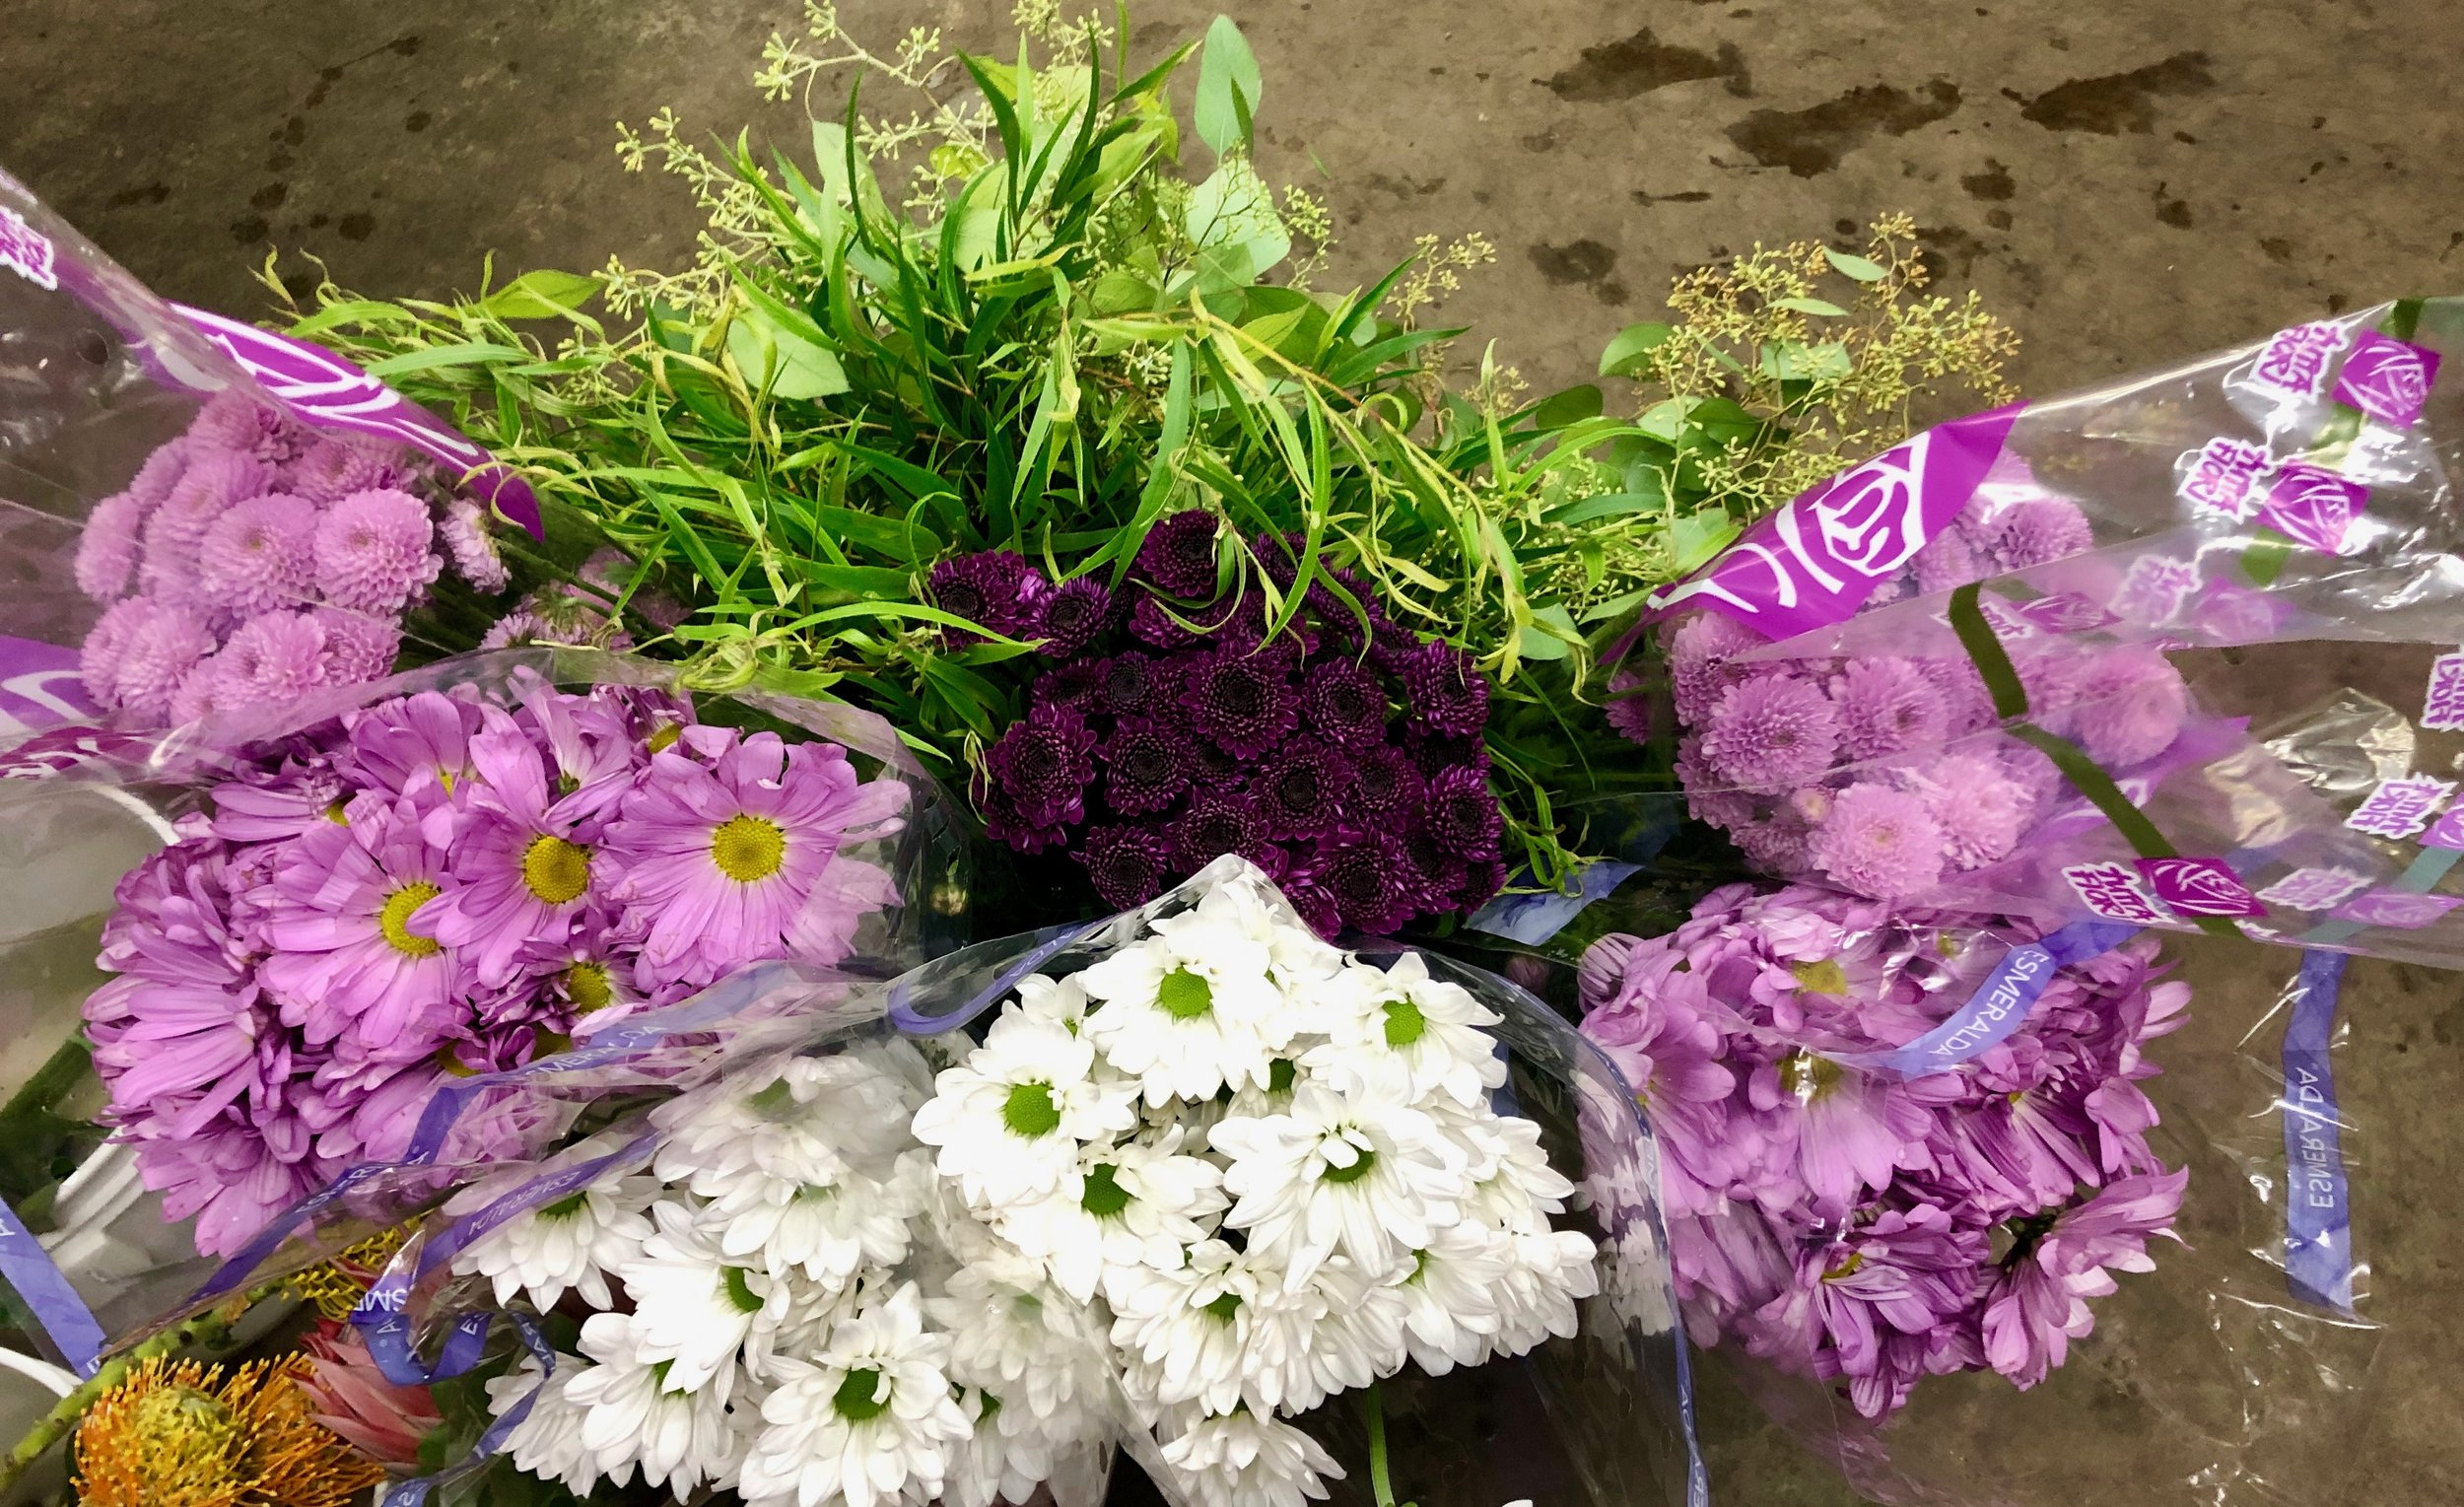 White and lavender daisies, lavender and dark purple button daisy mums, willow eucalyptus and seeded eucalyptus.